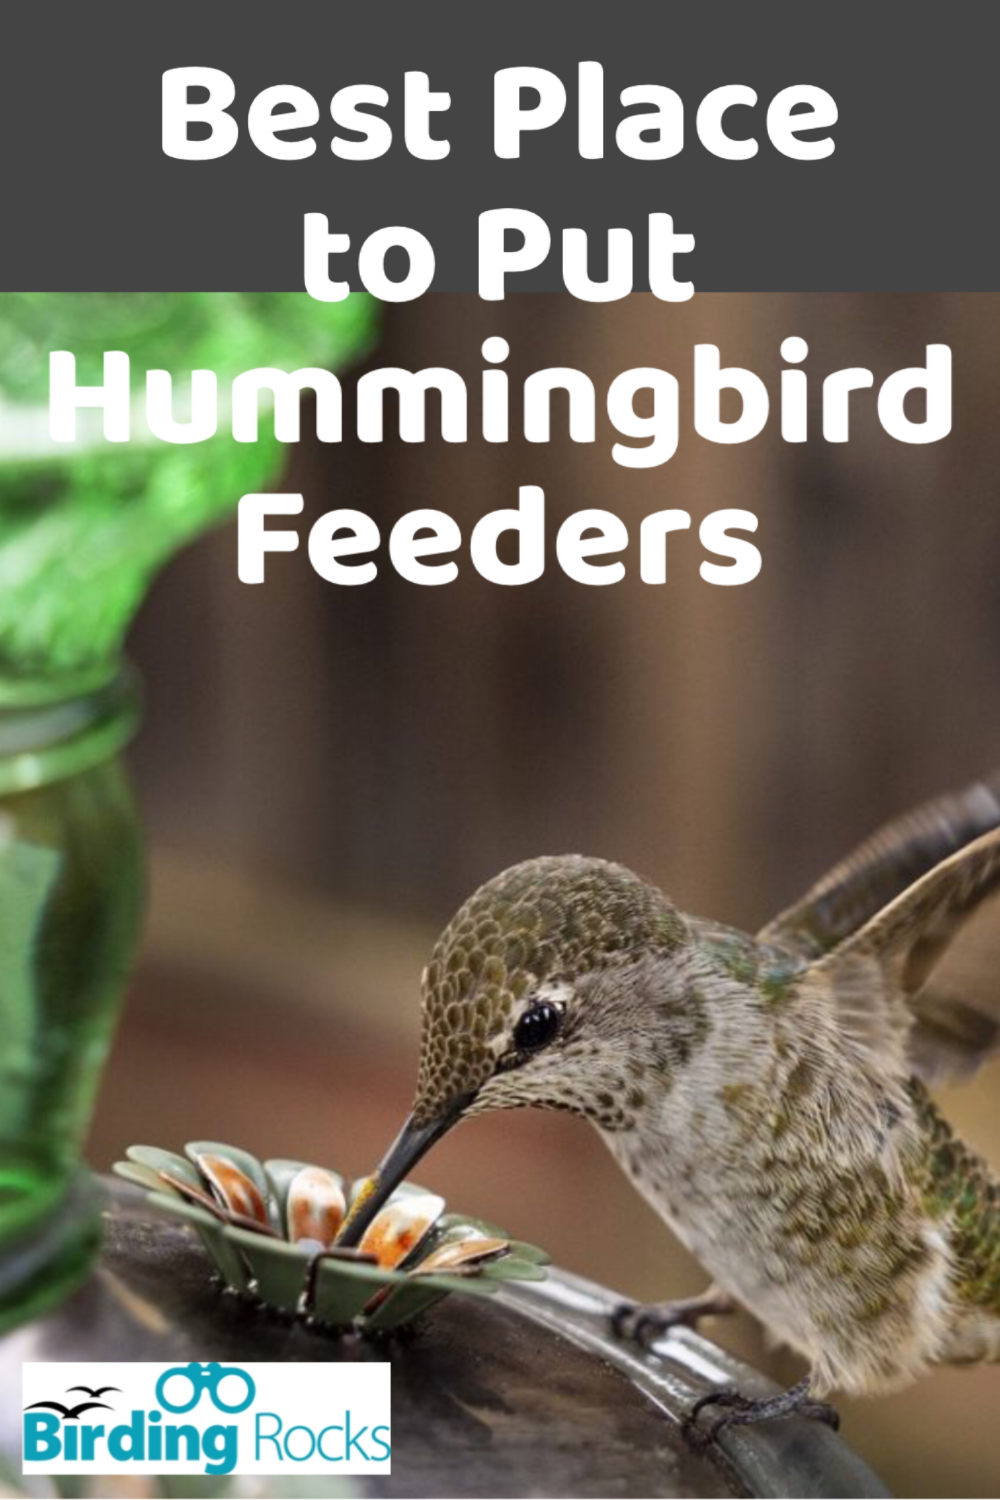 Best Place To Put Hummingbird Feeders In 2020 Humming Bird Feeders Hummingbird Sugar Water For Hummingbirds